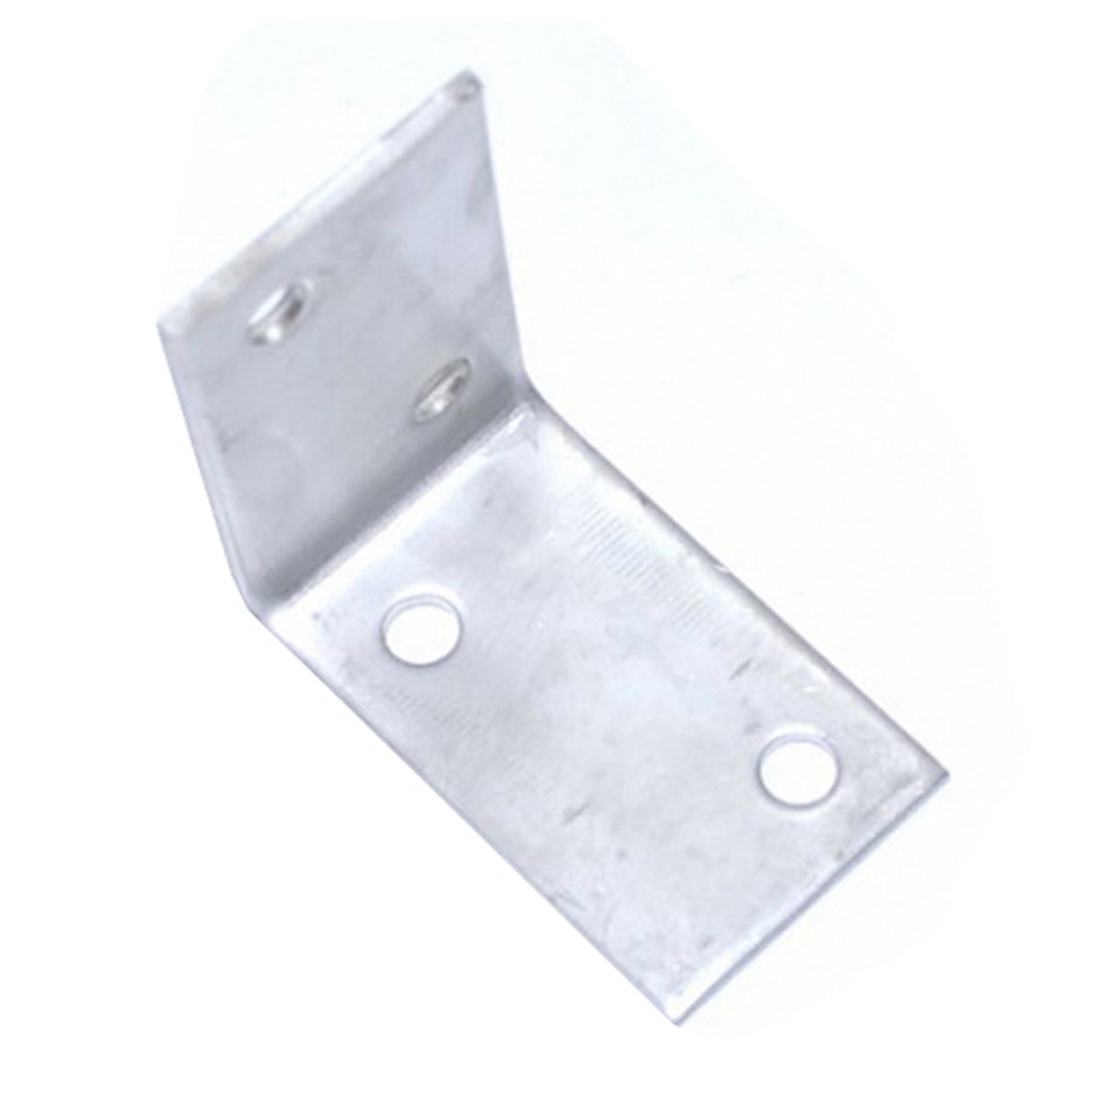 Angle Bracket M6 50 x 50 x 50 x 3mm 304 Stainless Steel BANS4050E050R